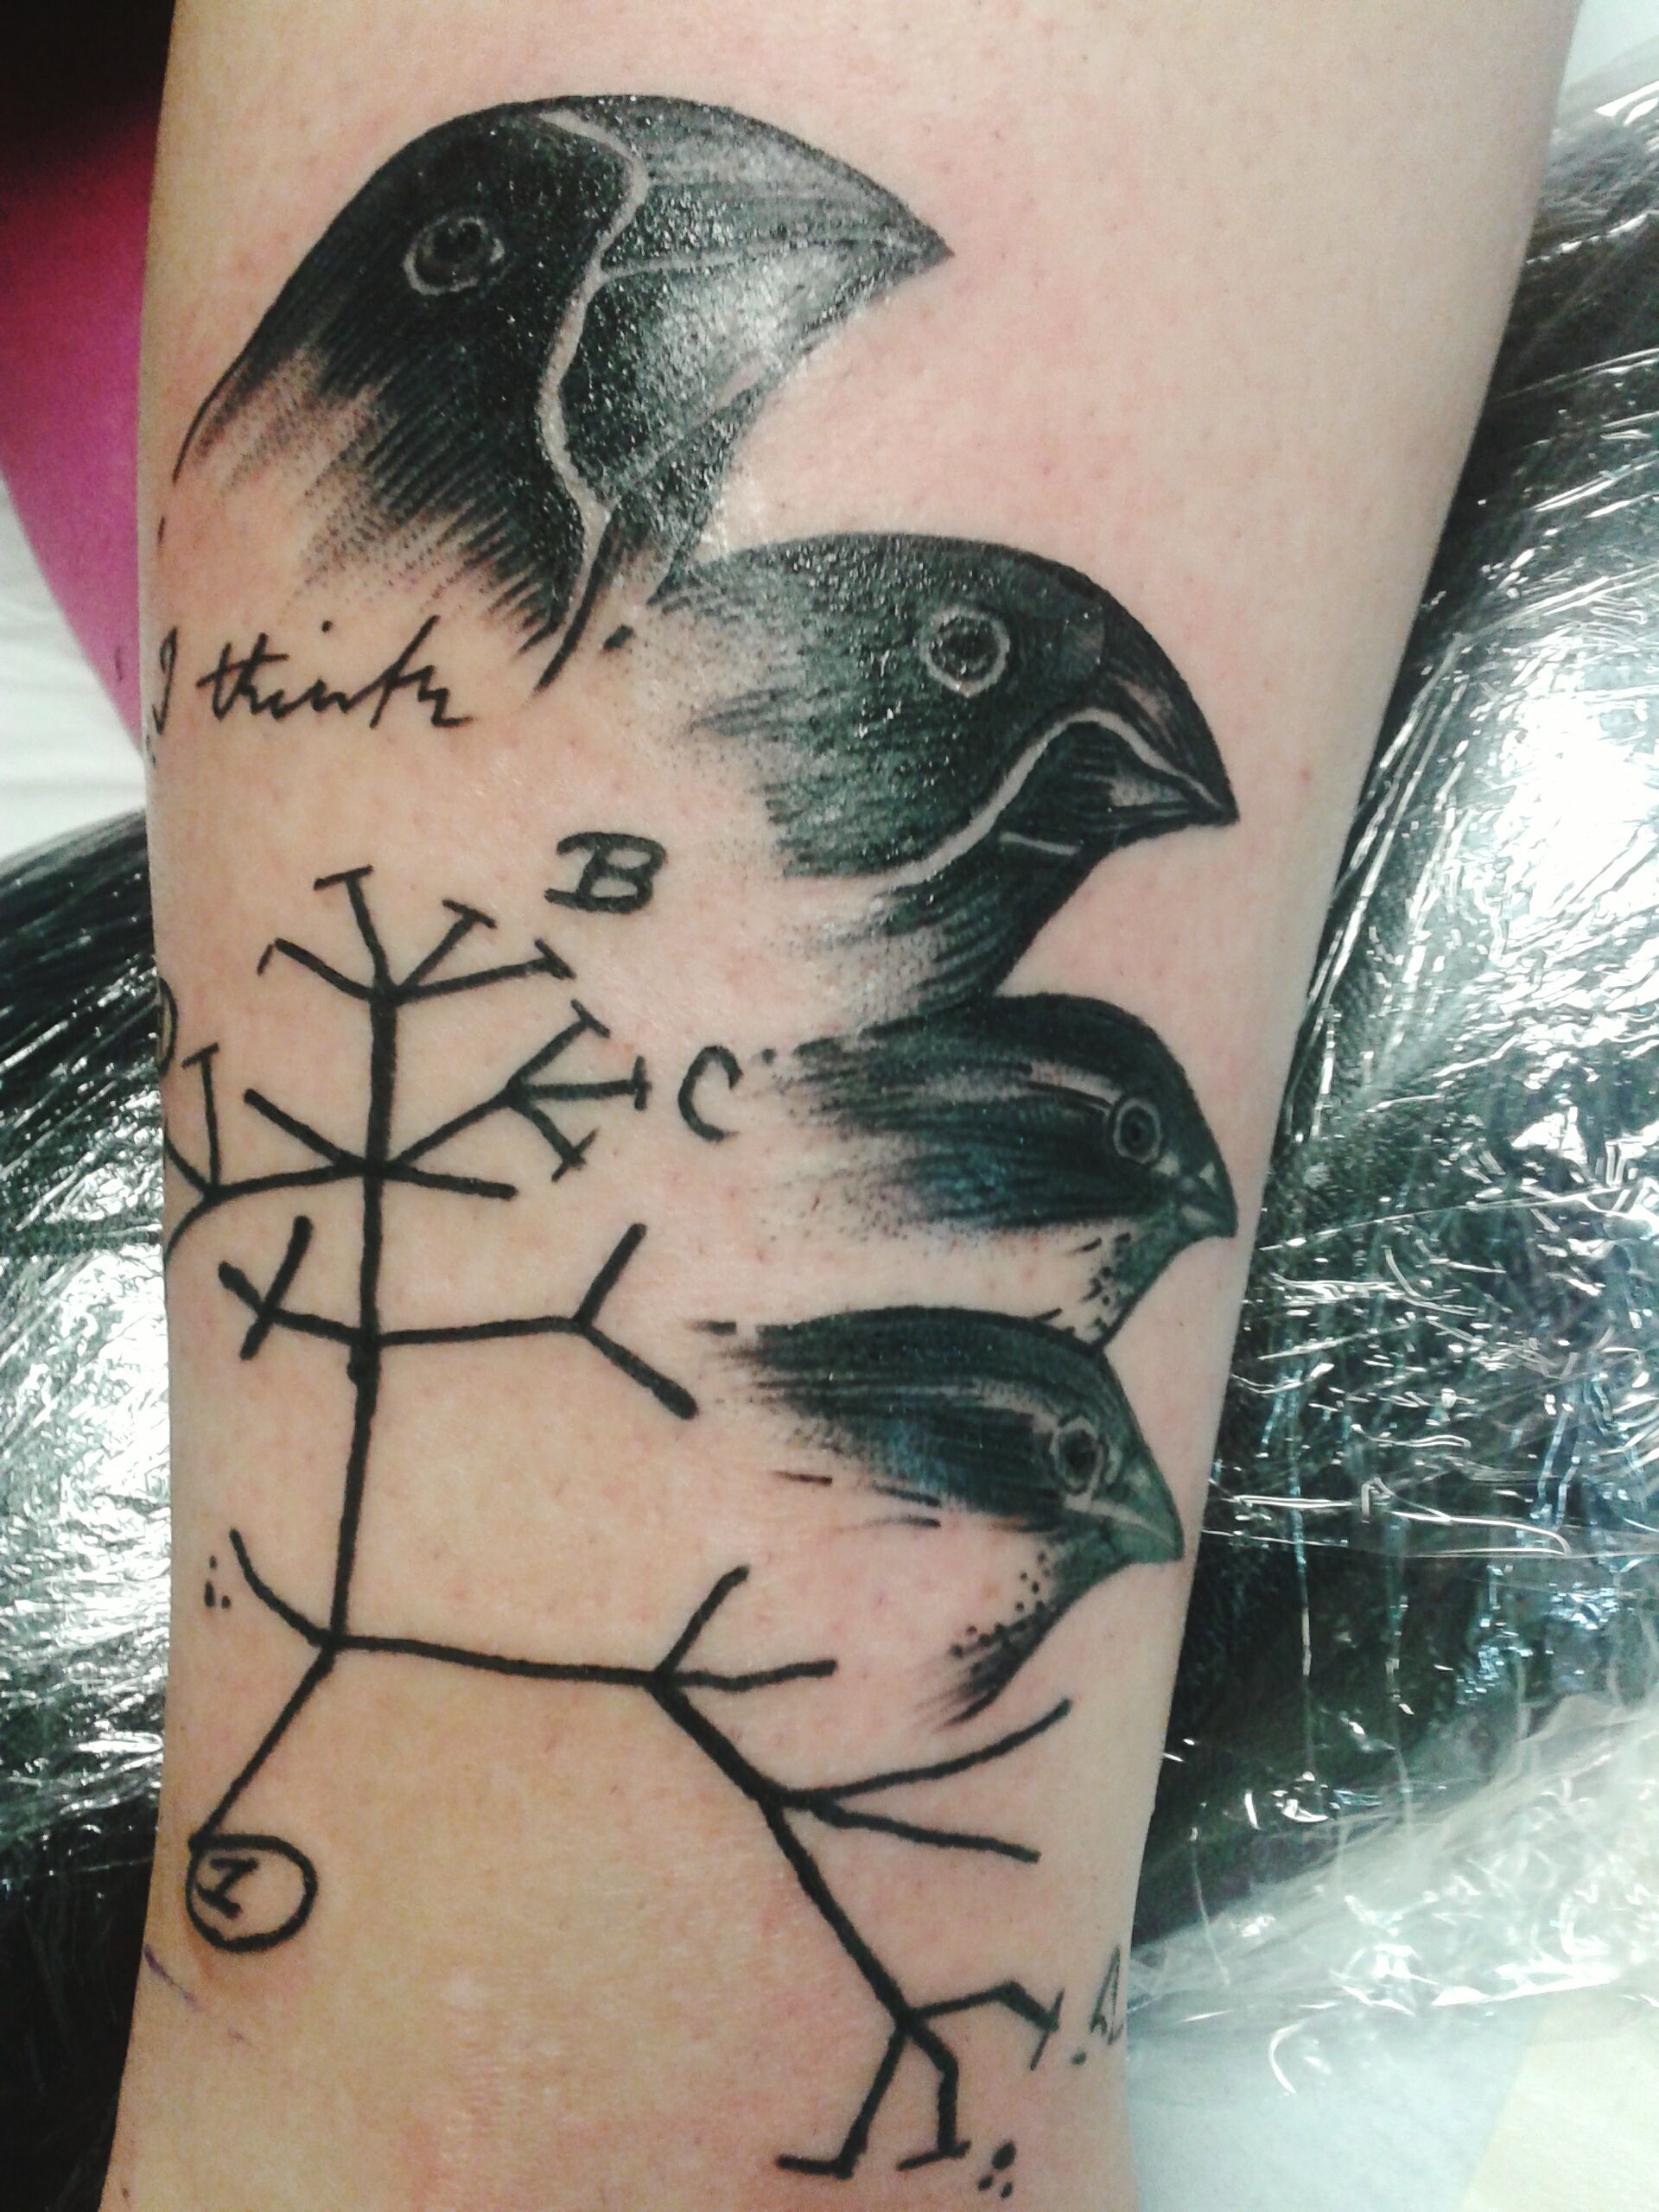 My First Tattoo Darwins First Scribble Of The Tree Of